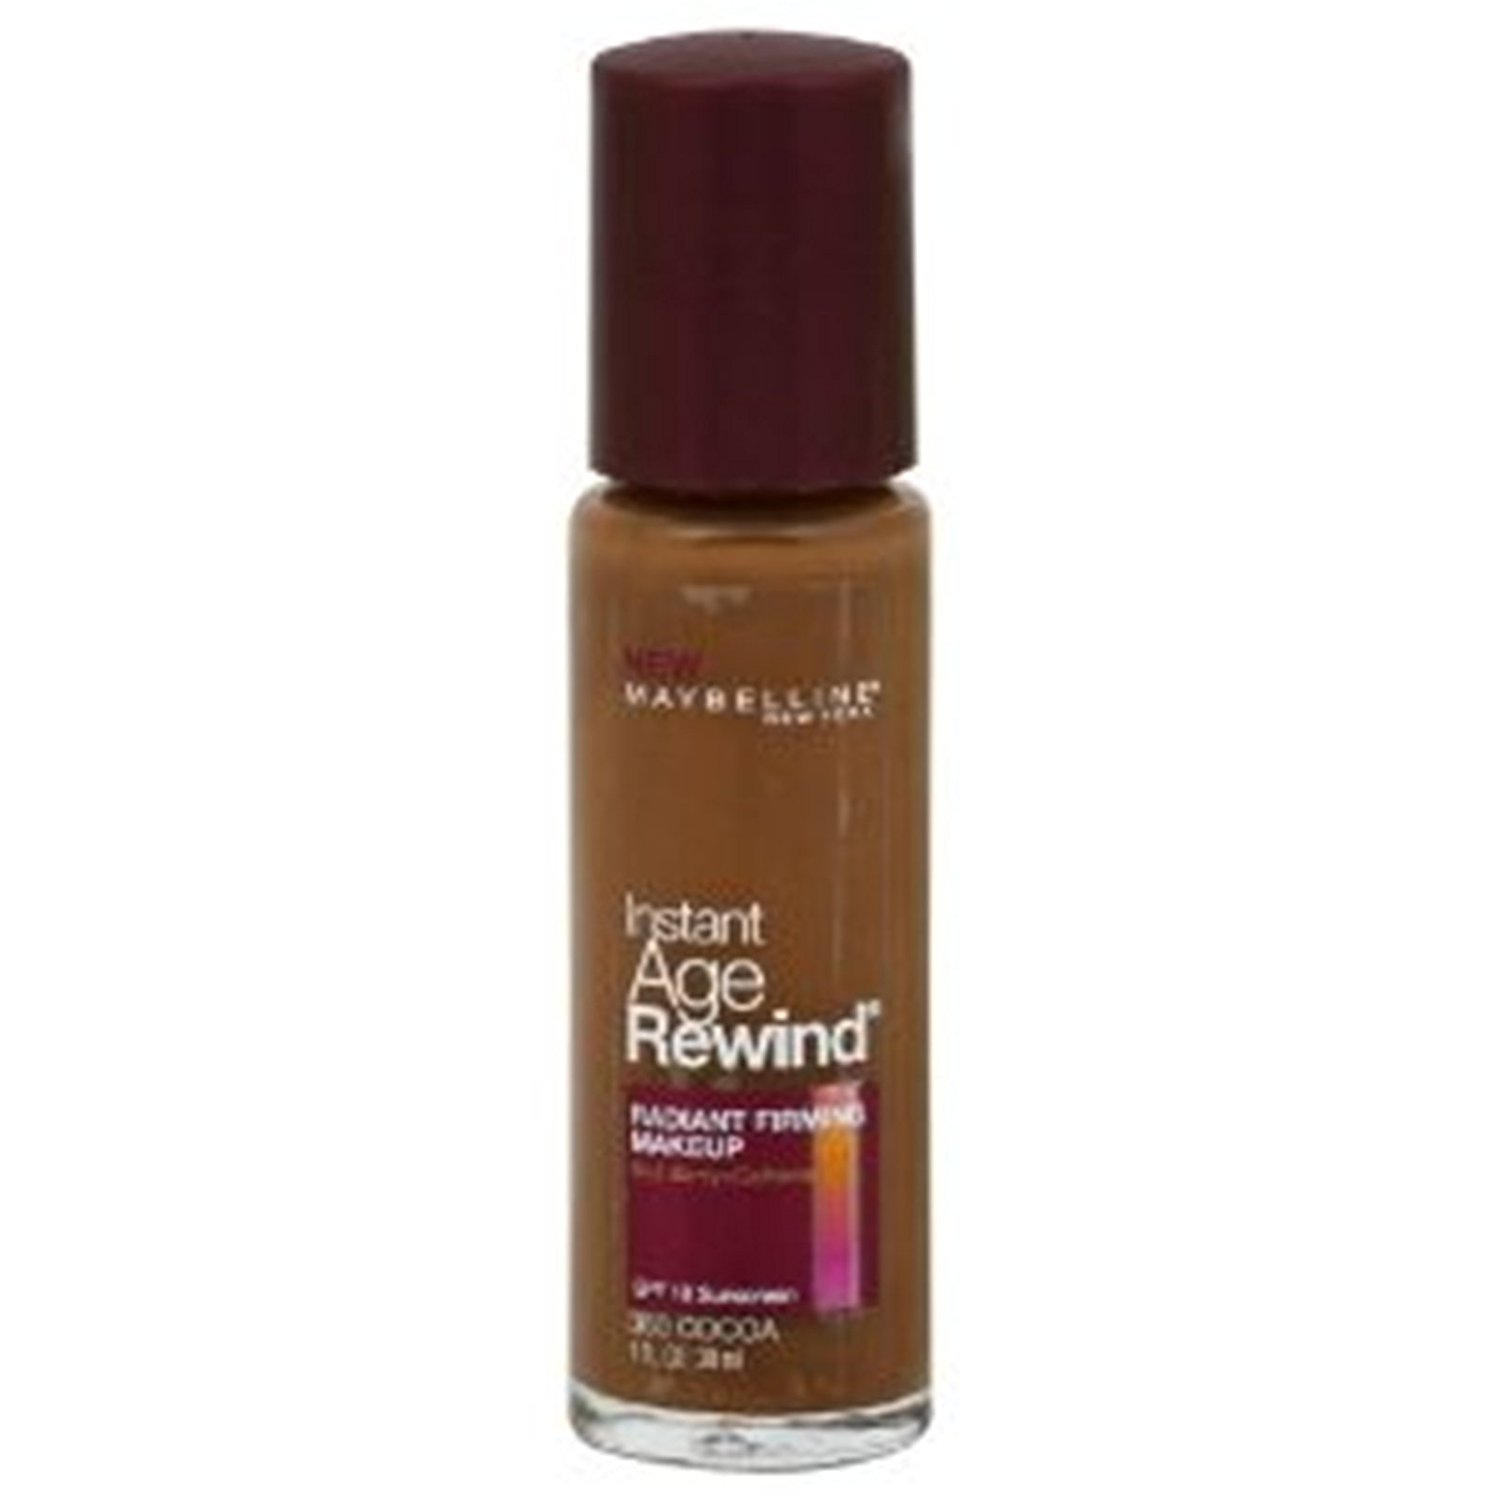 (2 Pack) Maybelline New York Instant Age Rewind Radiant Firming Makeup, Cocoa 360, 1 Fluid Ounce